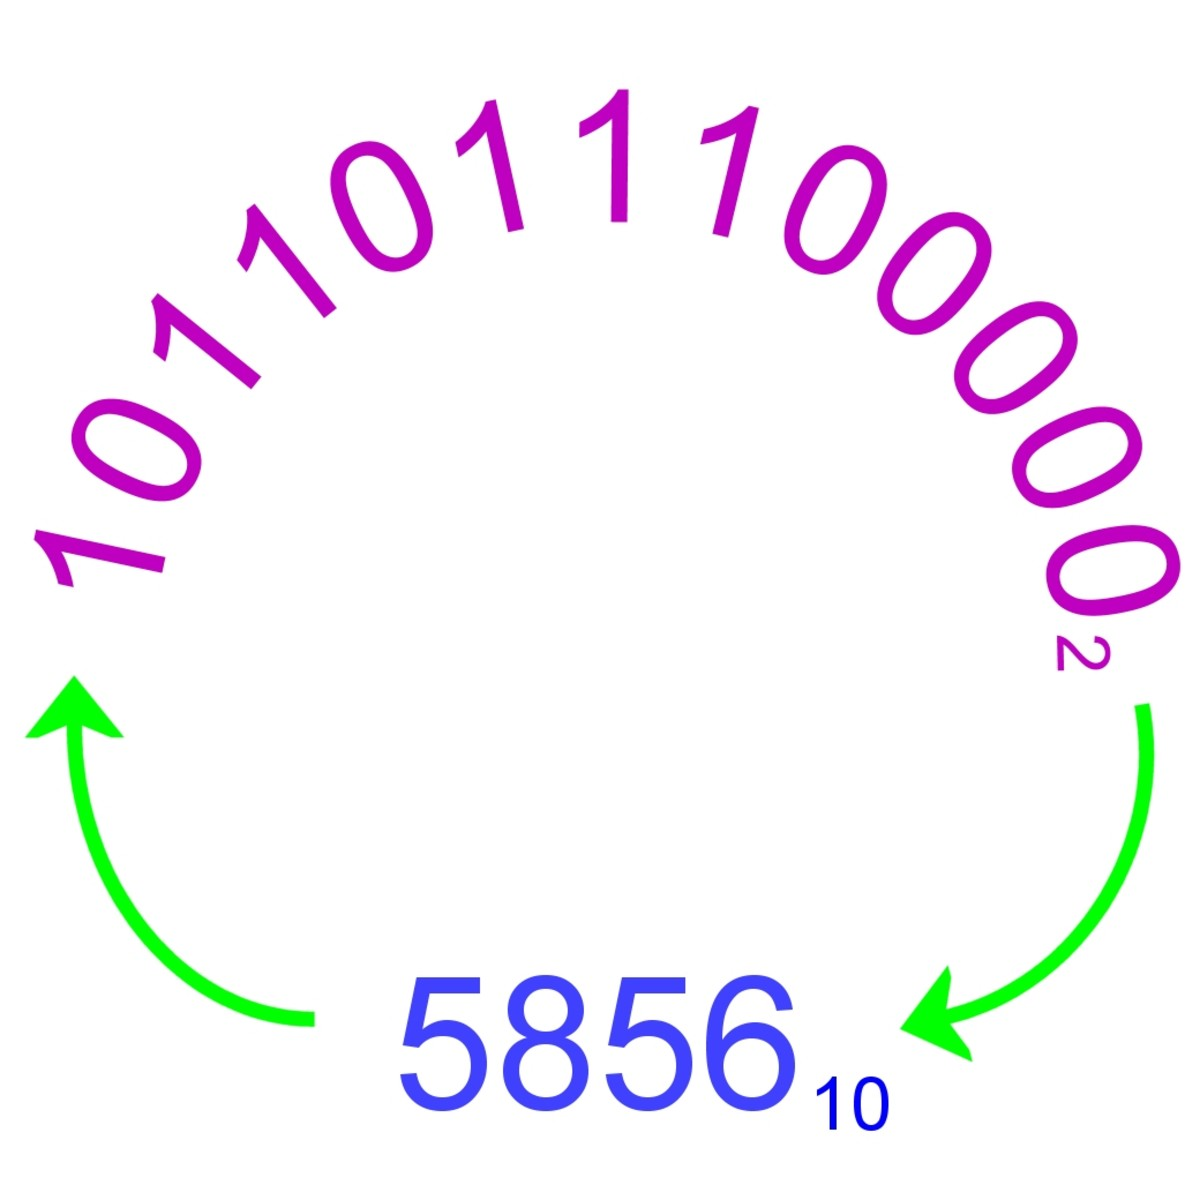 Binary number and its decimal equivalent.